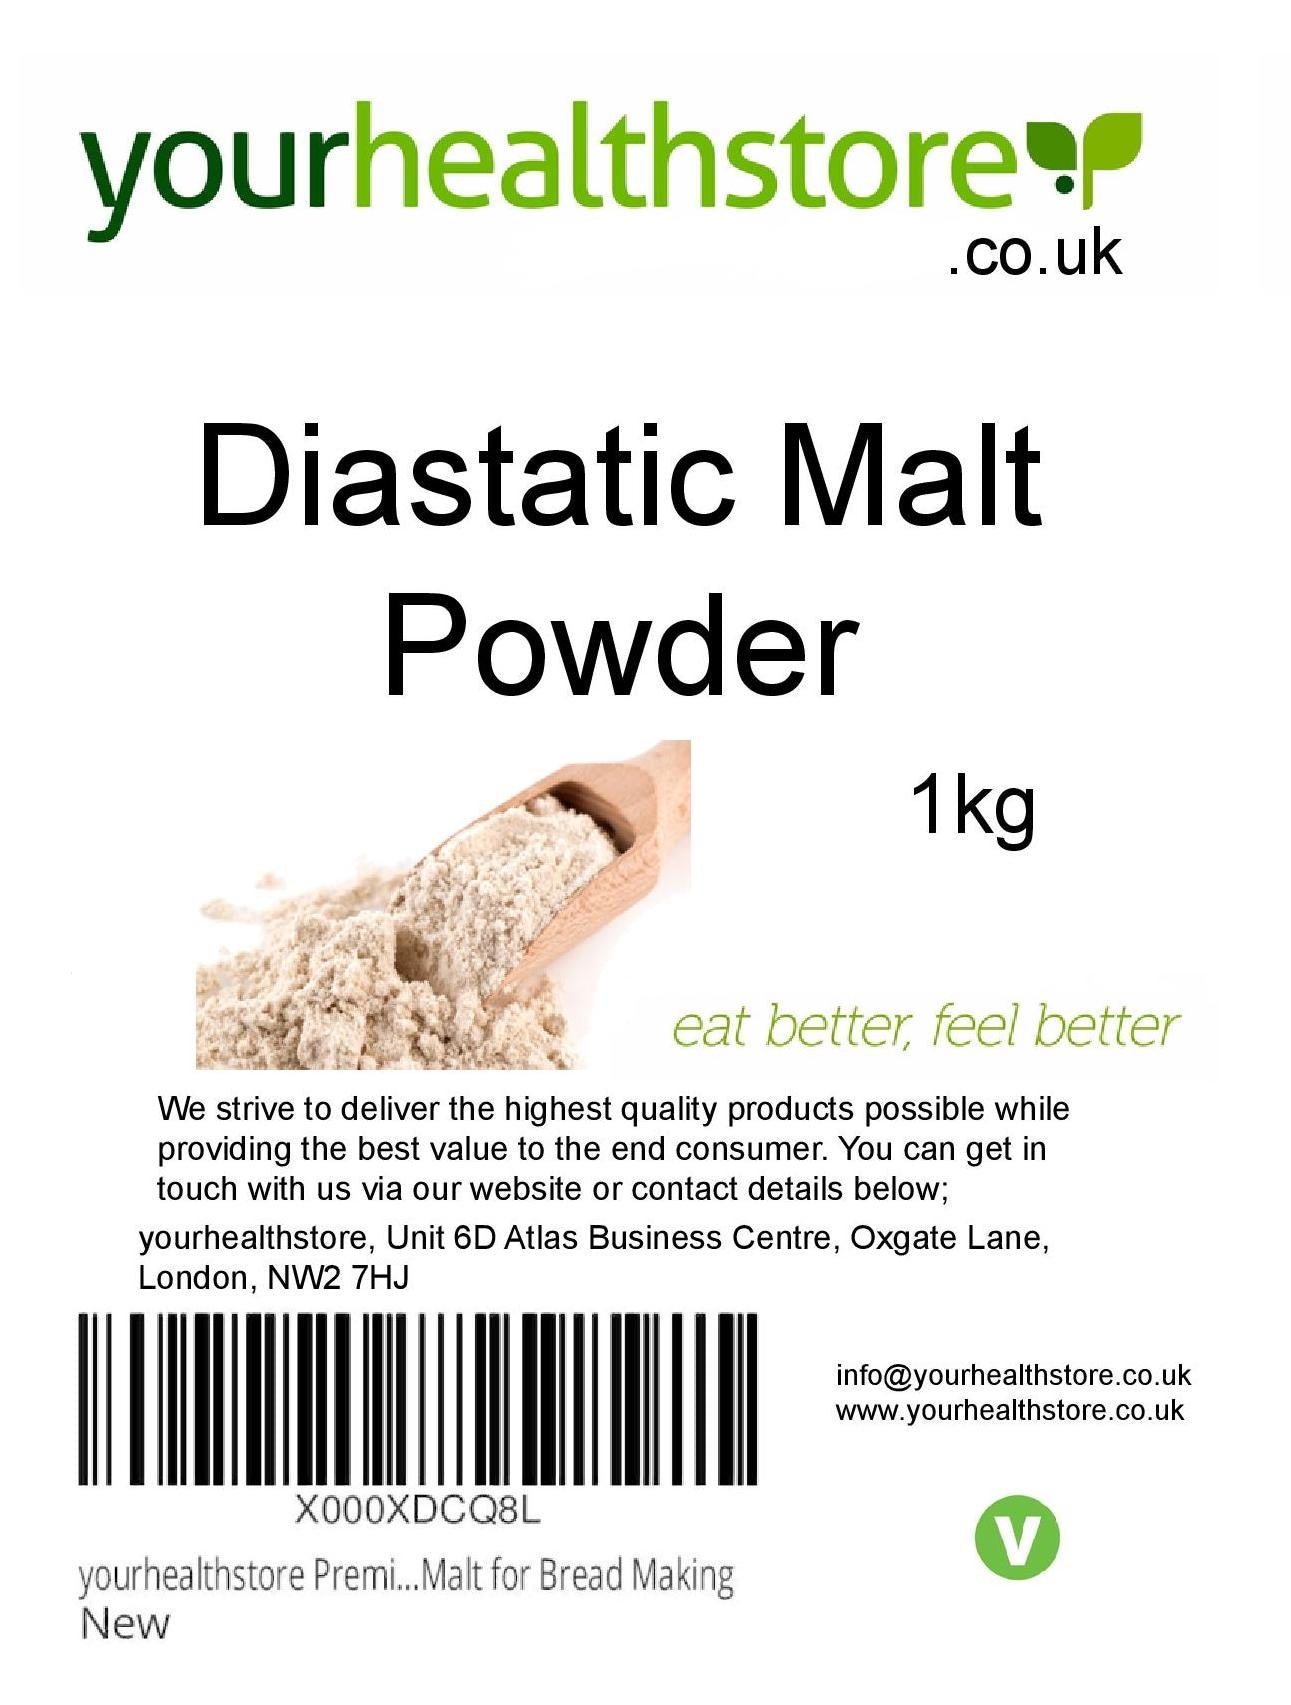 yourhealthstore Premium Diastatic Malt Powder 1kg Barley Malt for Bread Making